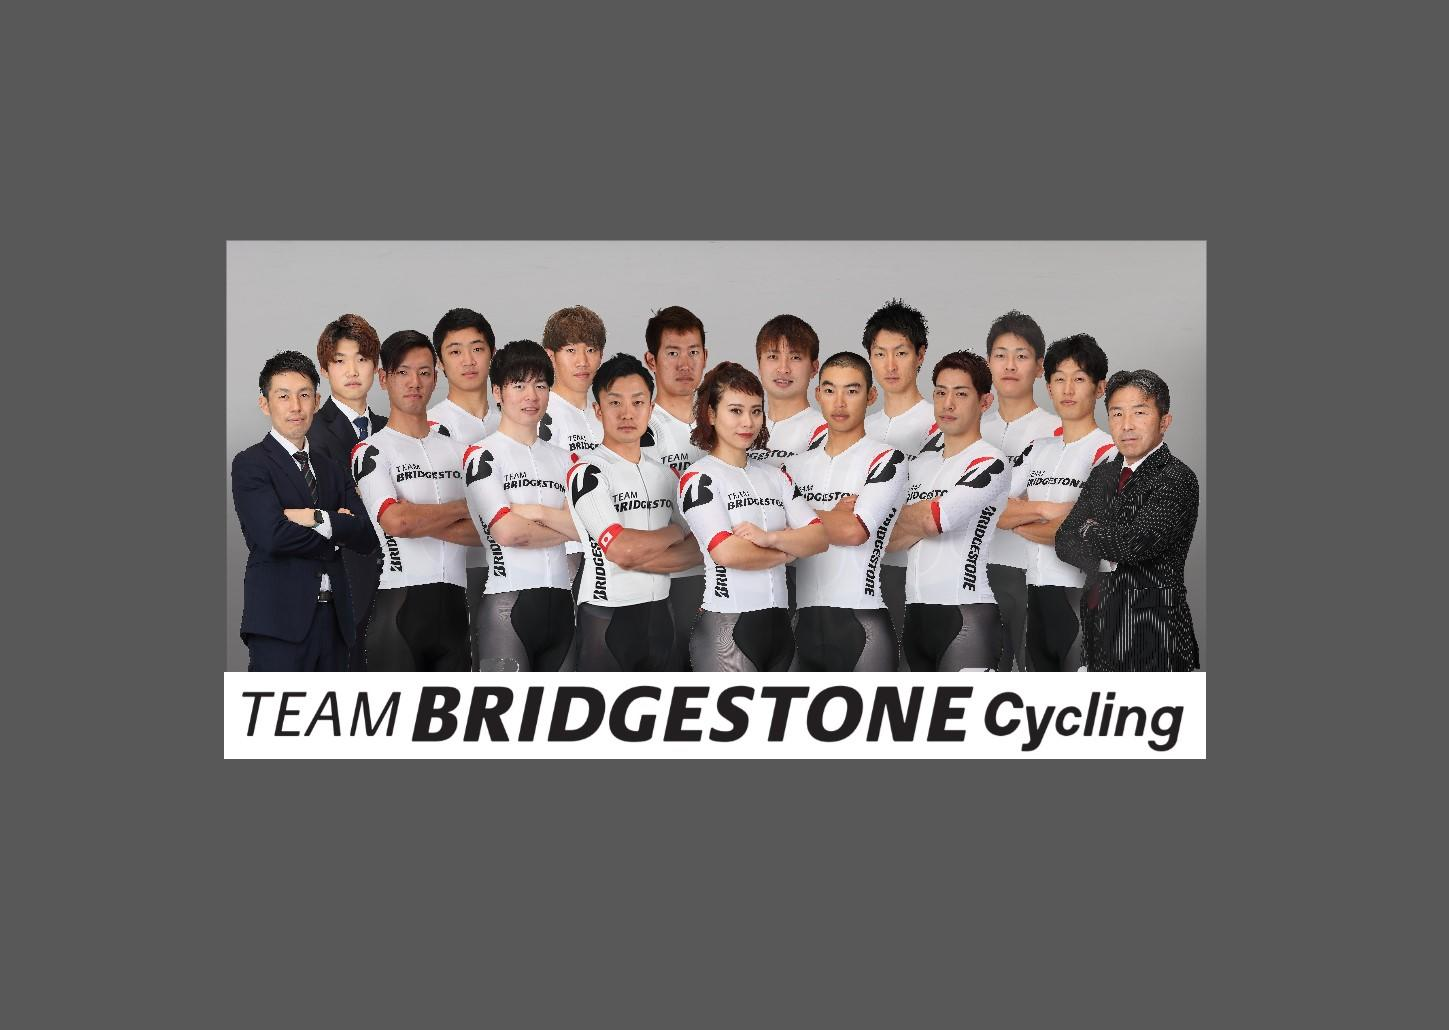 TEAM BRIDGESTONE Cyclingが2021年チーム体制を発表